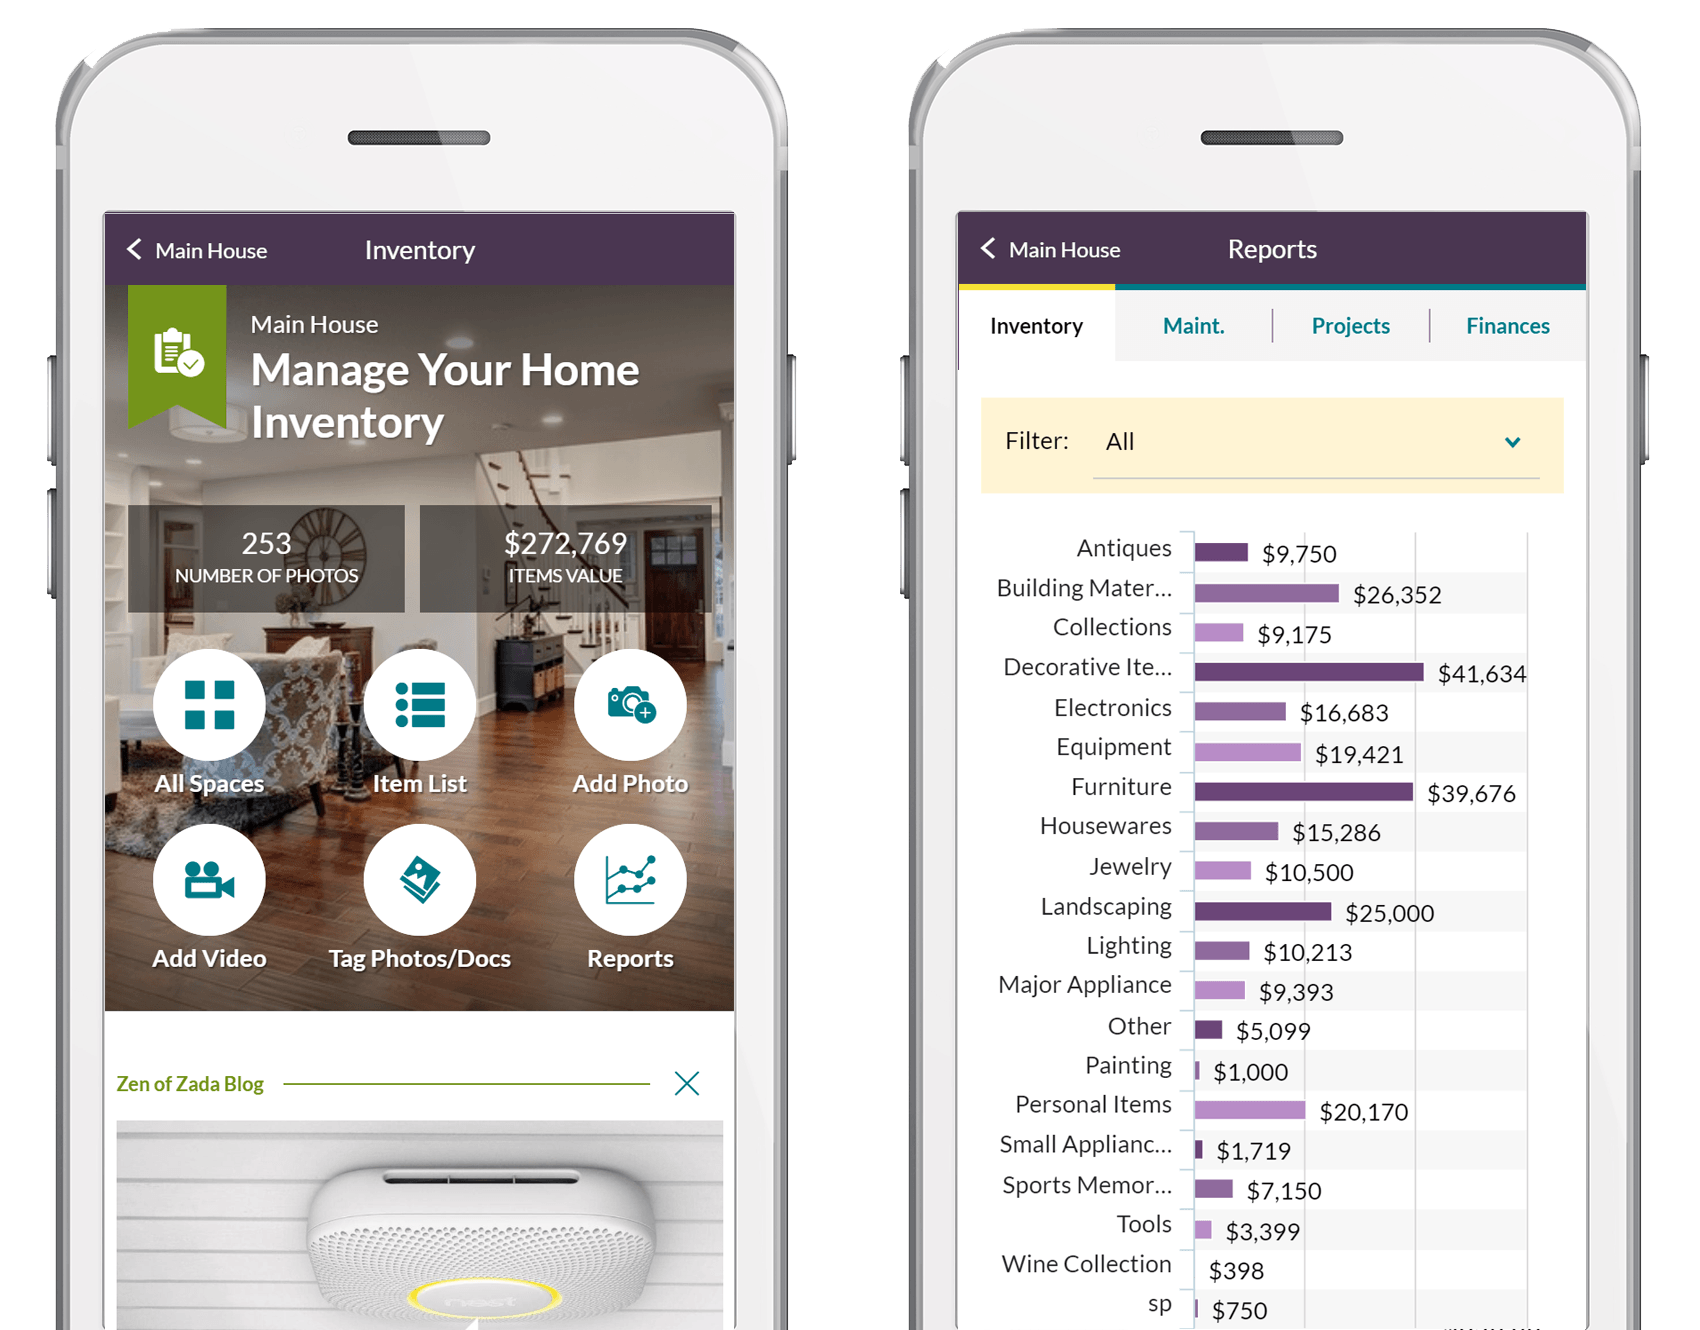 Home Inventory Dashboard and Reports